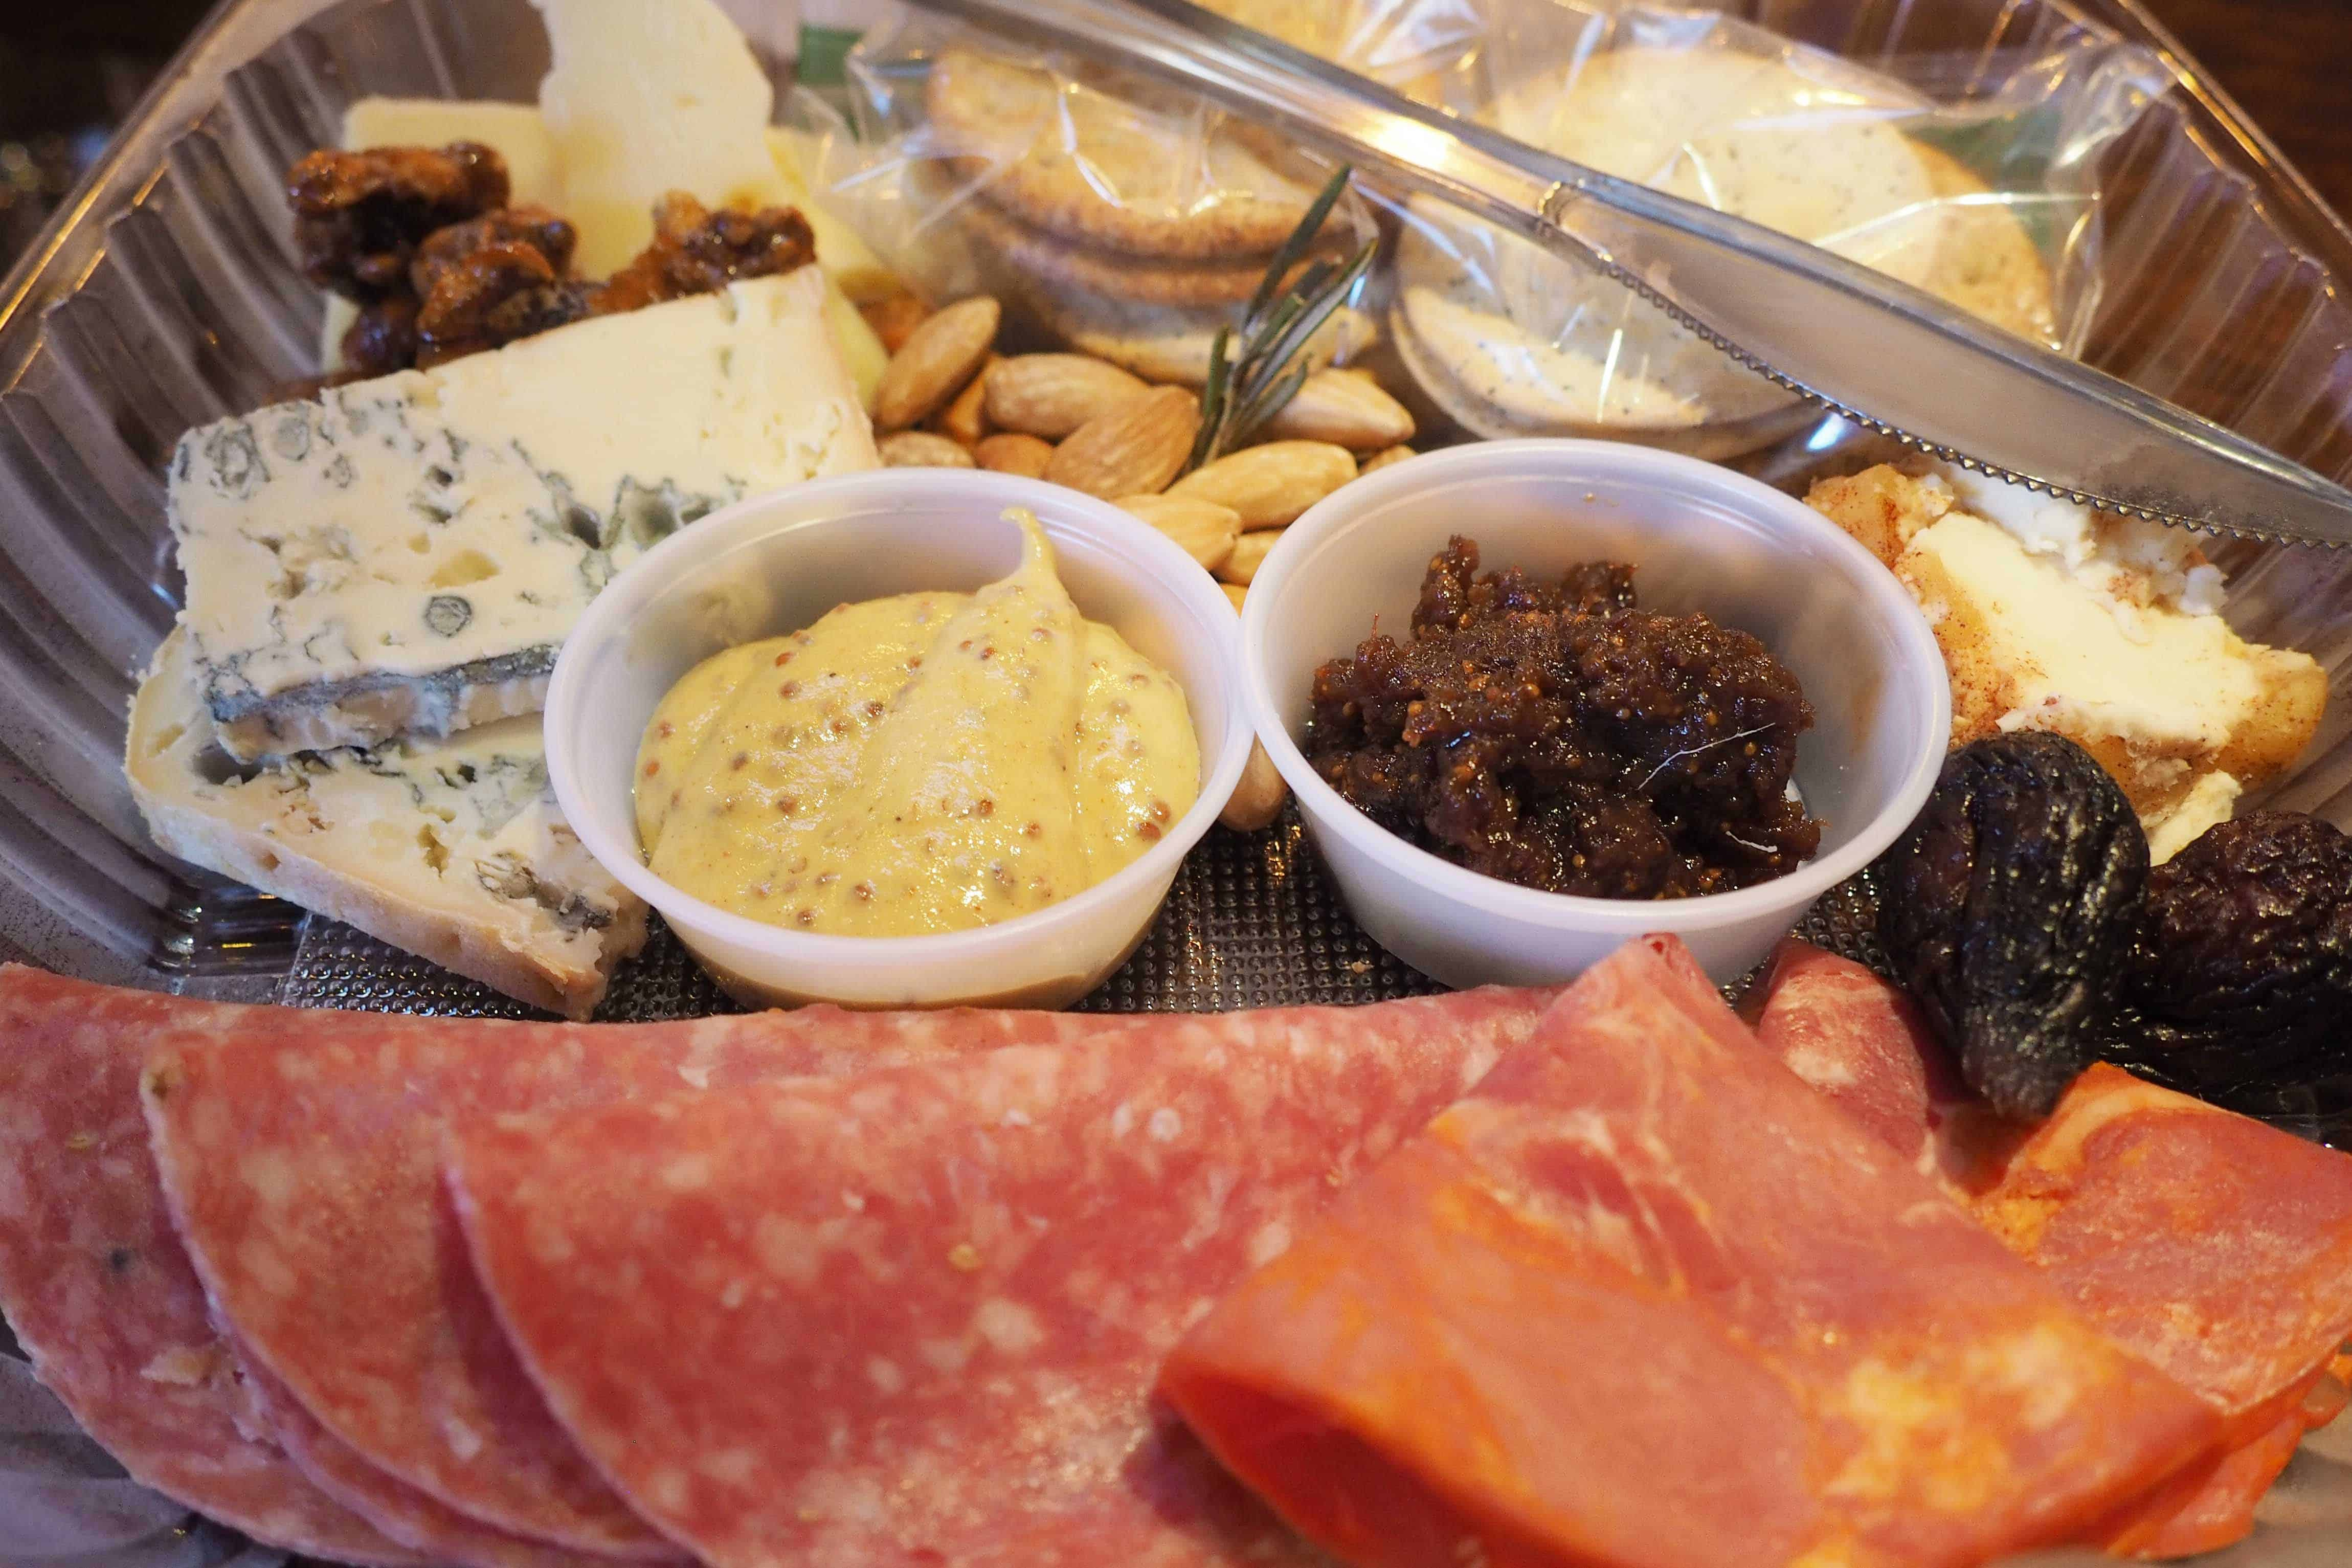 Coomber Craft Wines Charcuterie